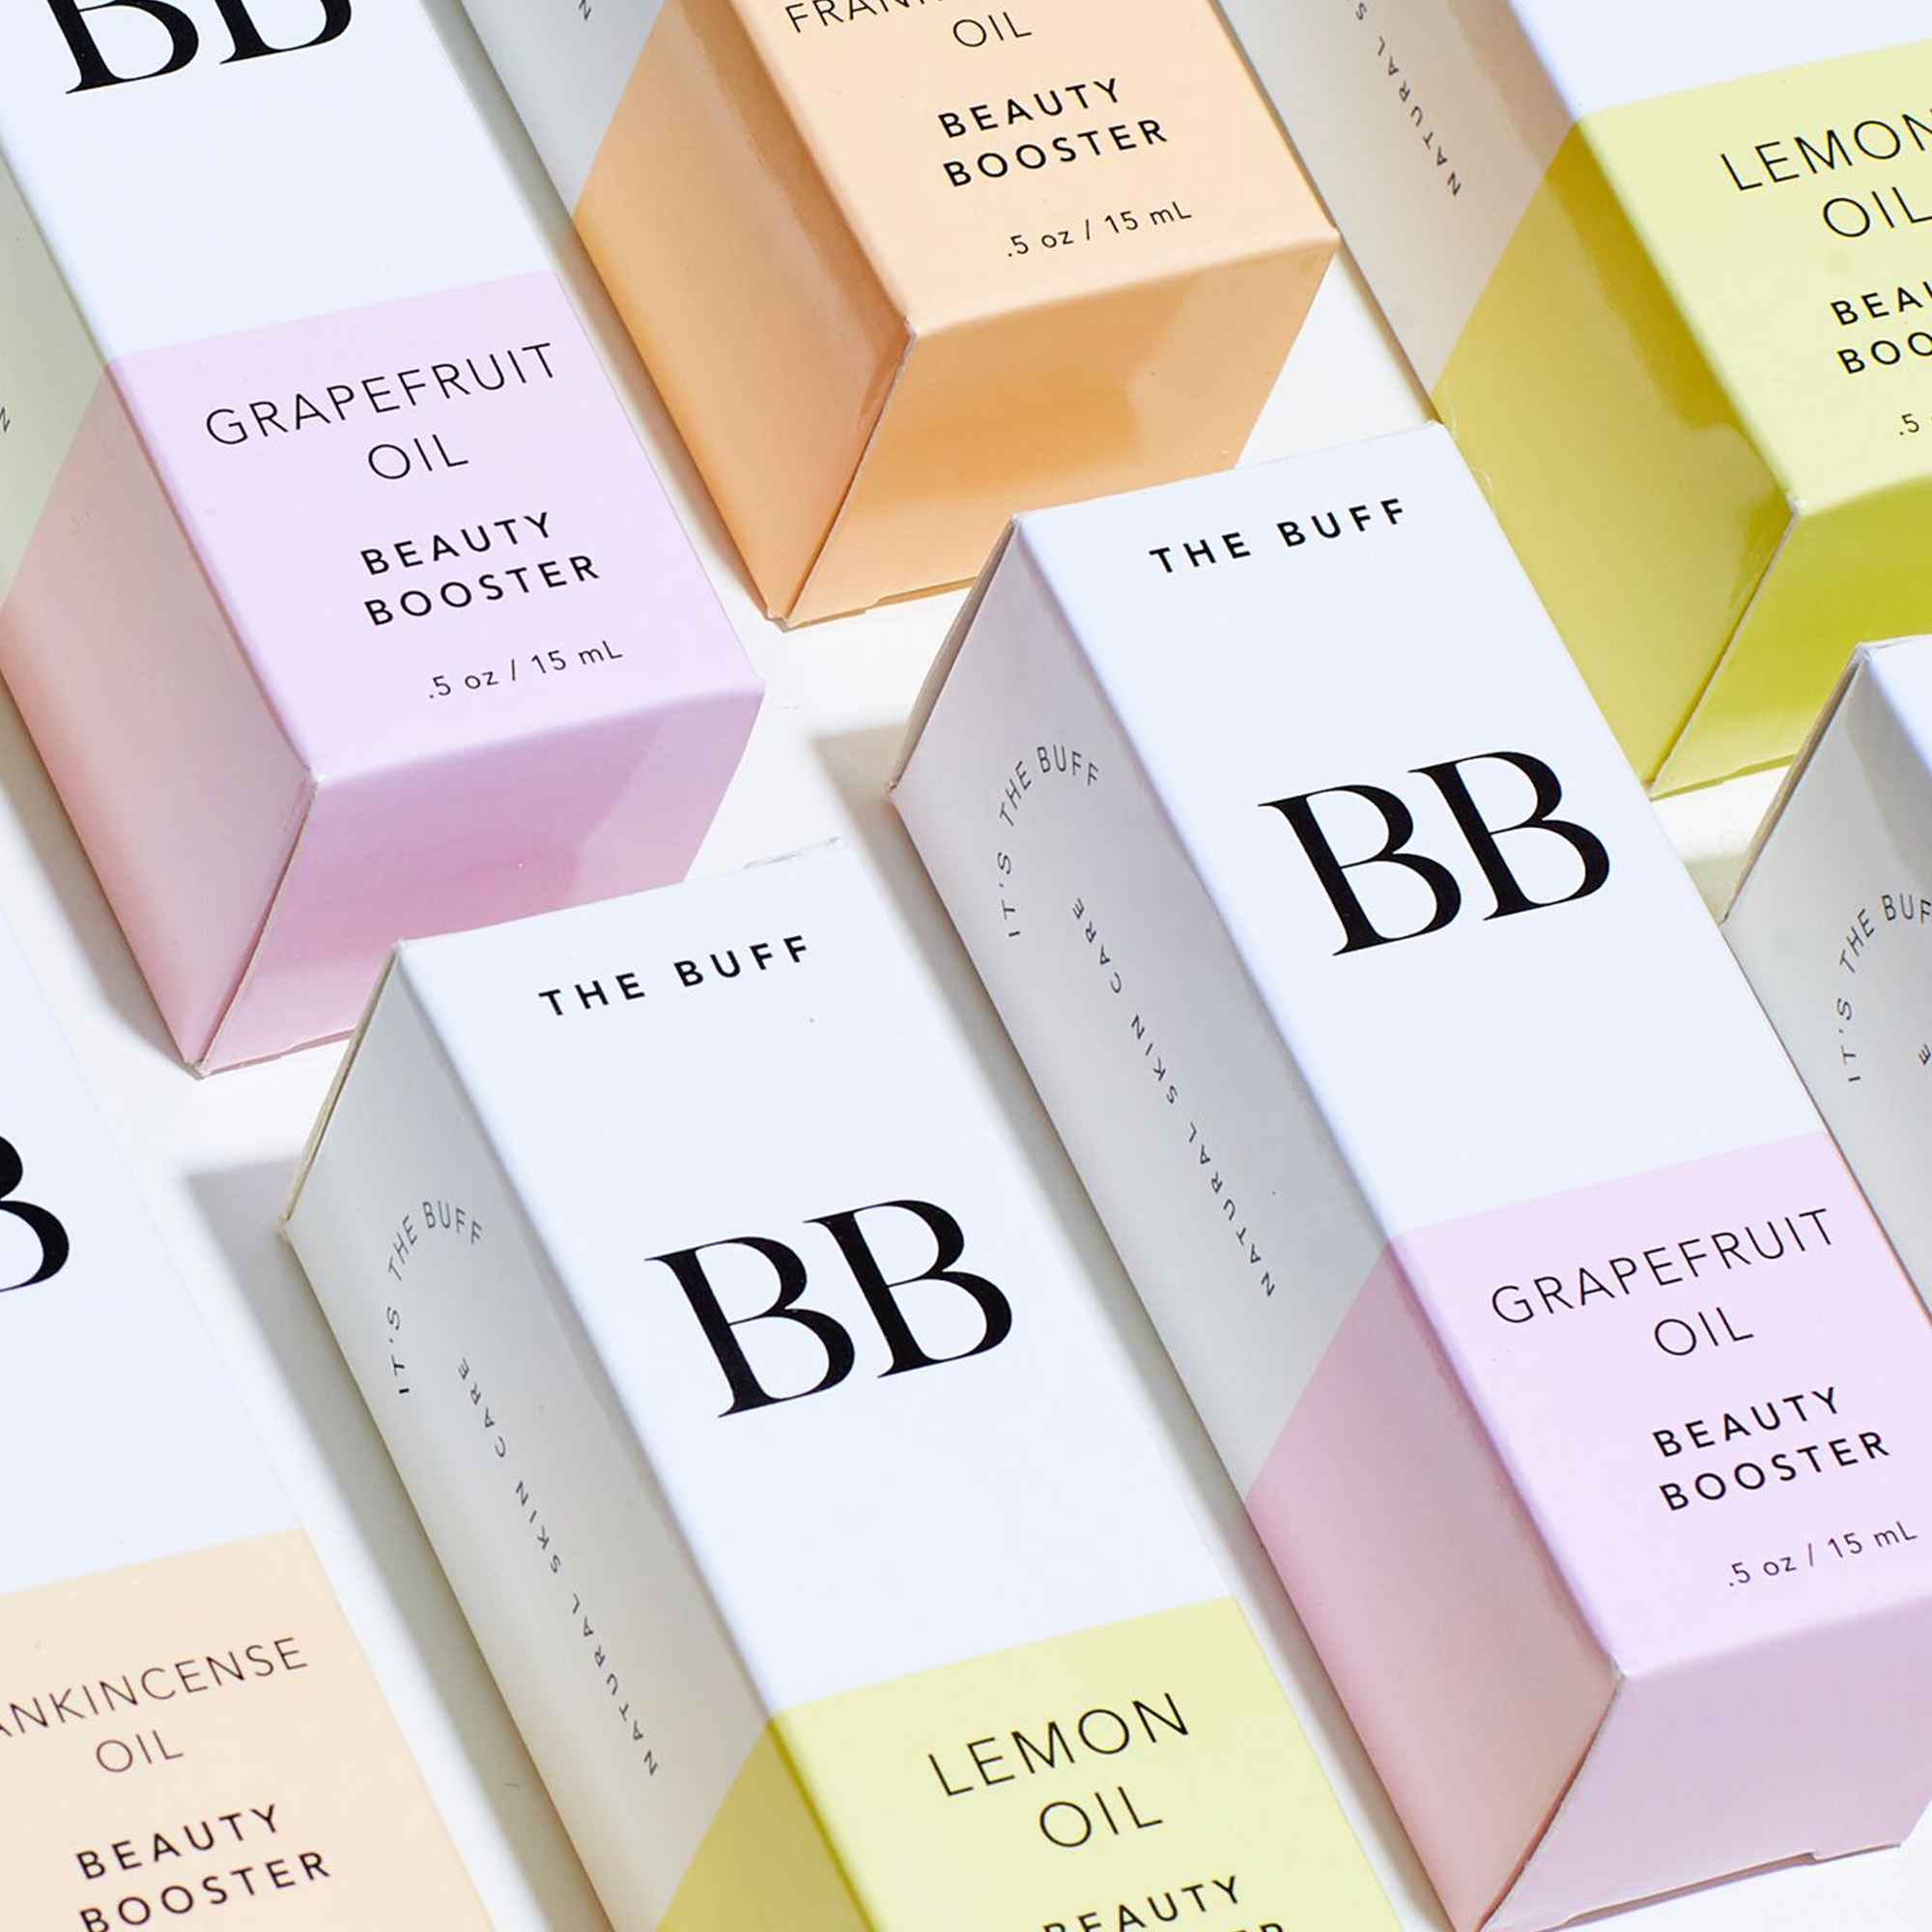 THE BUFF   Packaging & label design for natural skincare startup, THE BUFF. Featured in Vogue and Refinery29.